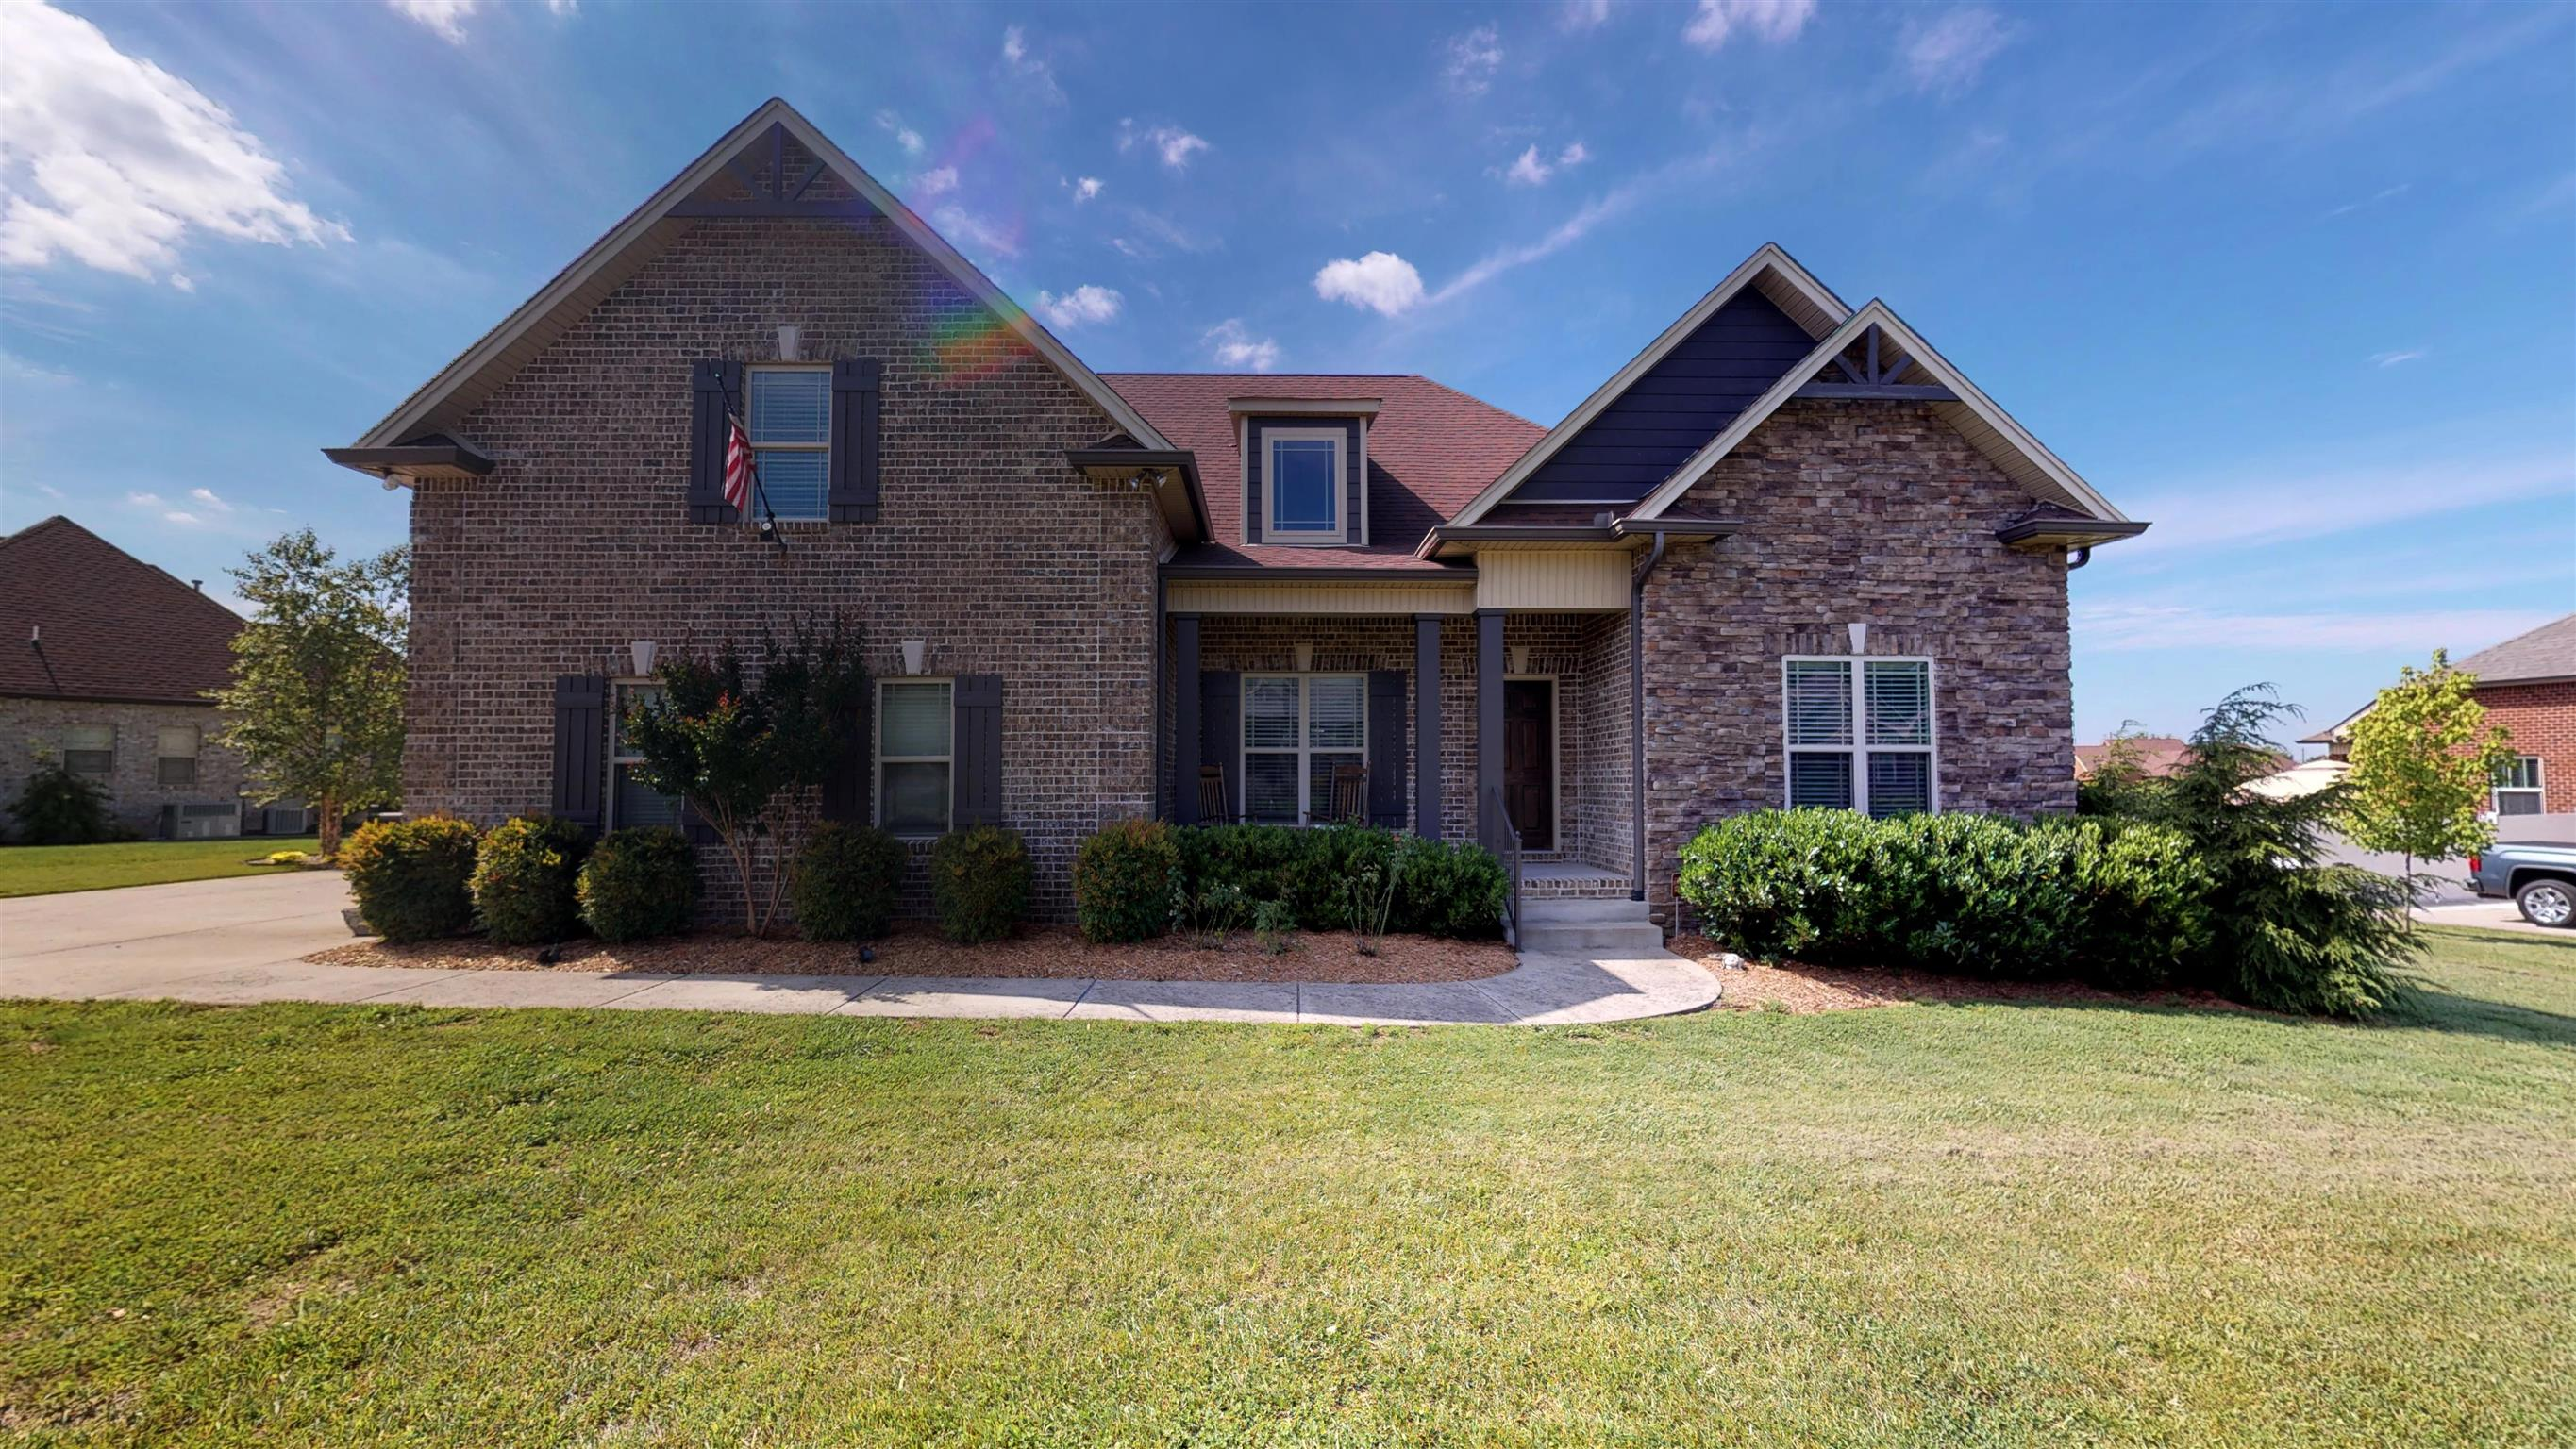 3013 Bristol Ln, Greenbrier, TN 37073 - Greenbrier, TN real estate listing